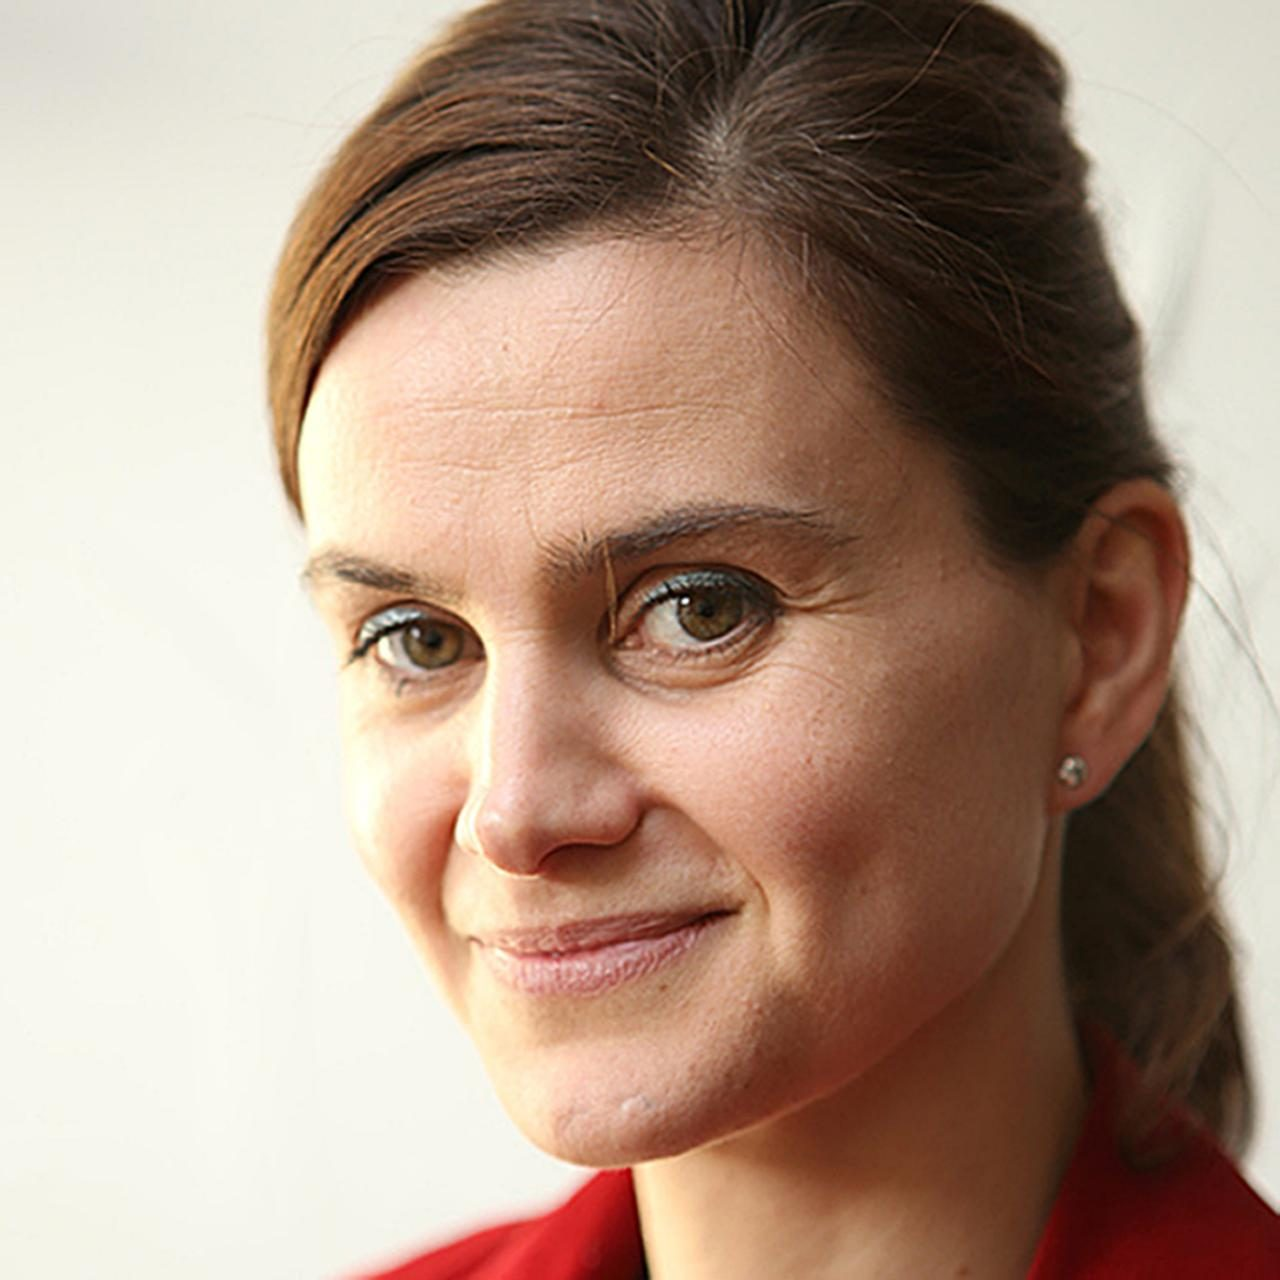 Labour MP Jo Cox campaigned for the plight of Syrian refugees